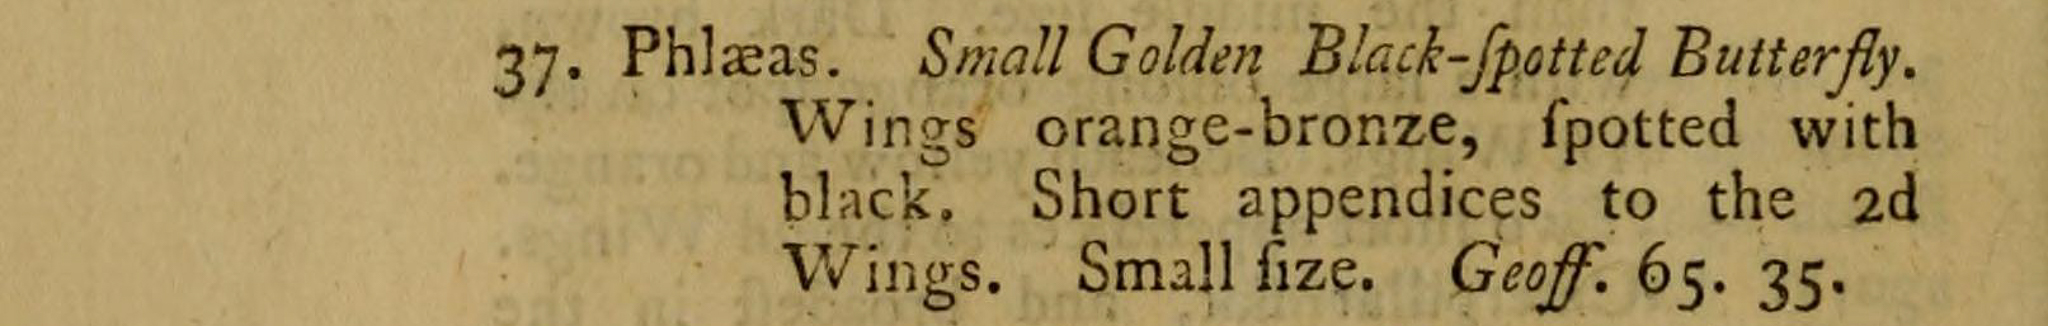 Small Copper in John Berkenhout's Outlines of the Natural History of Great Britain - The Hall of Einar